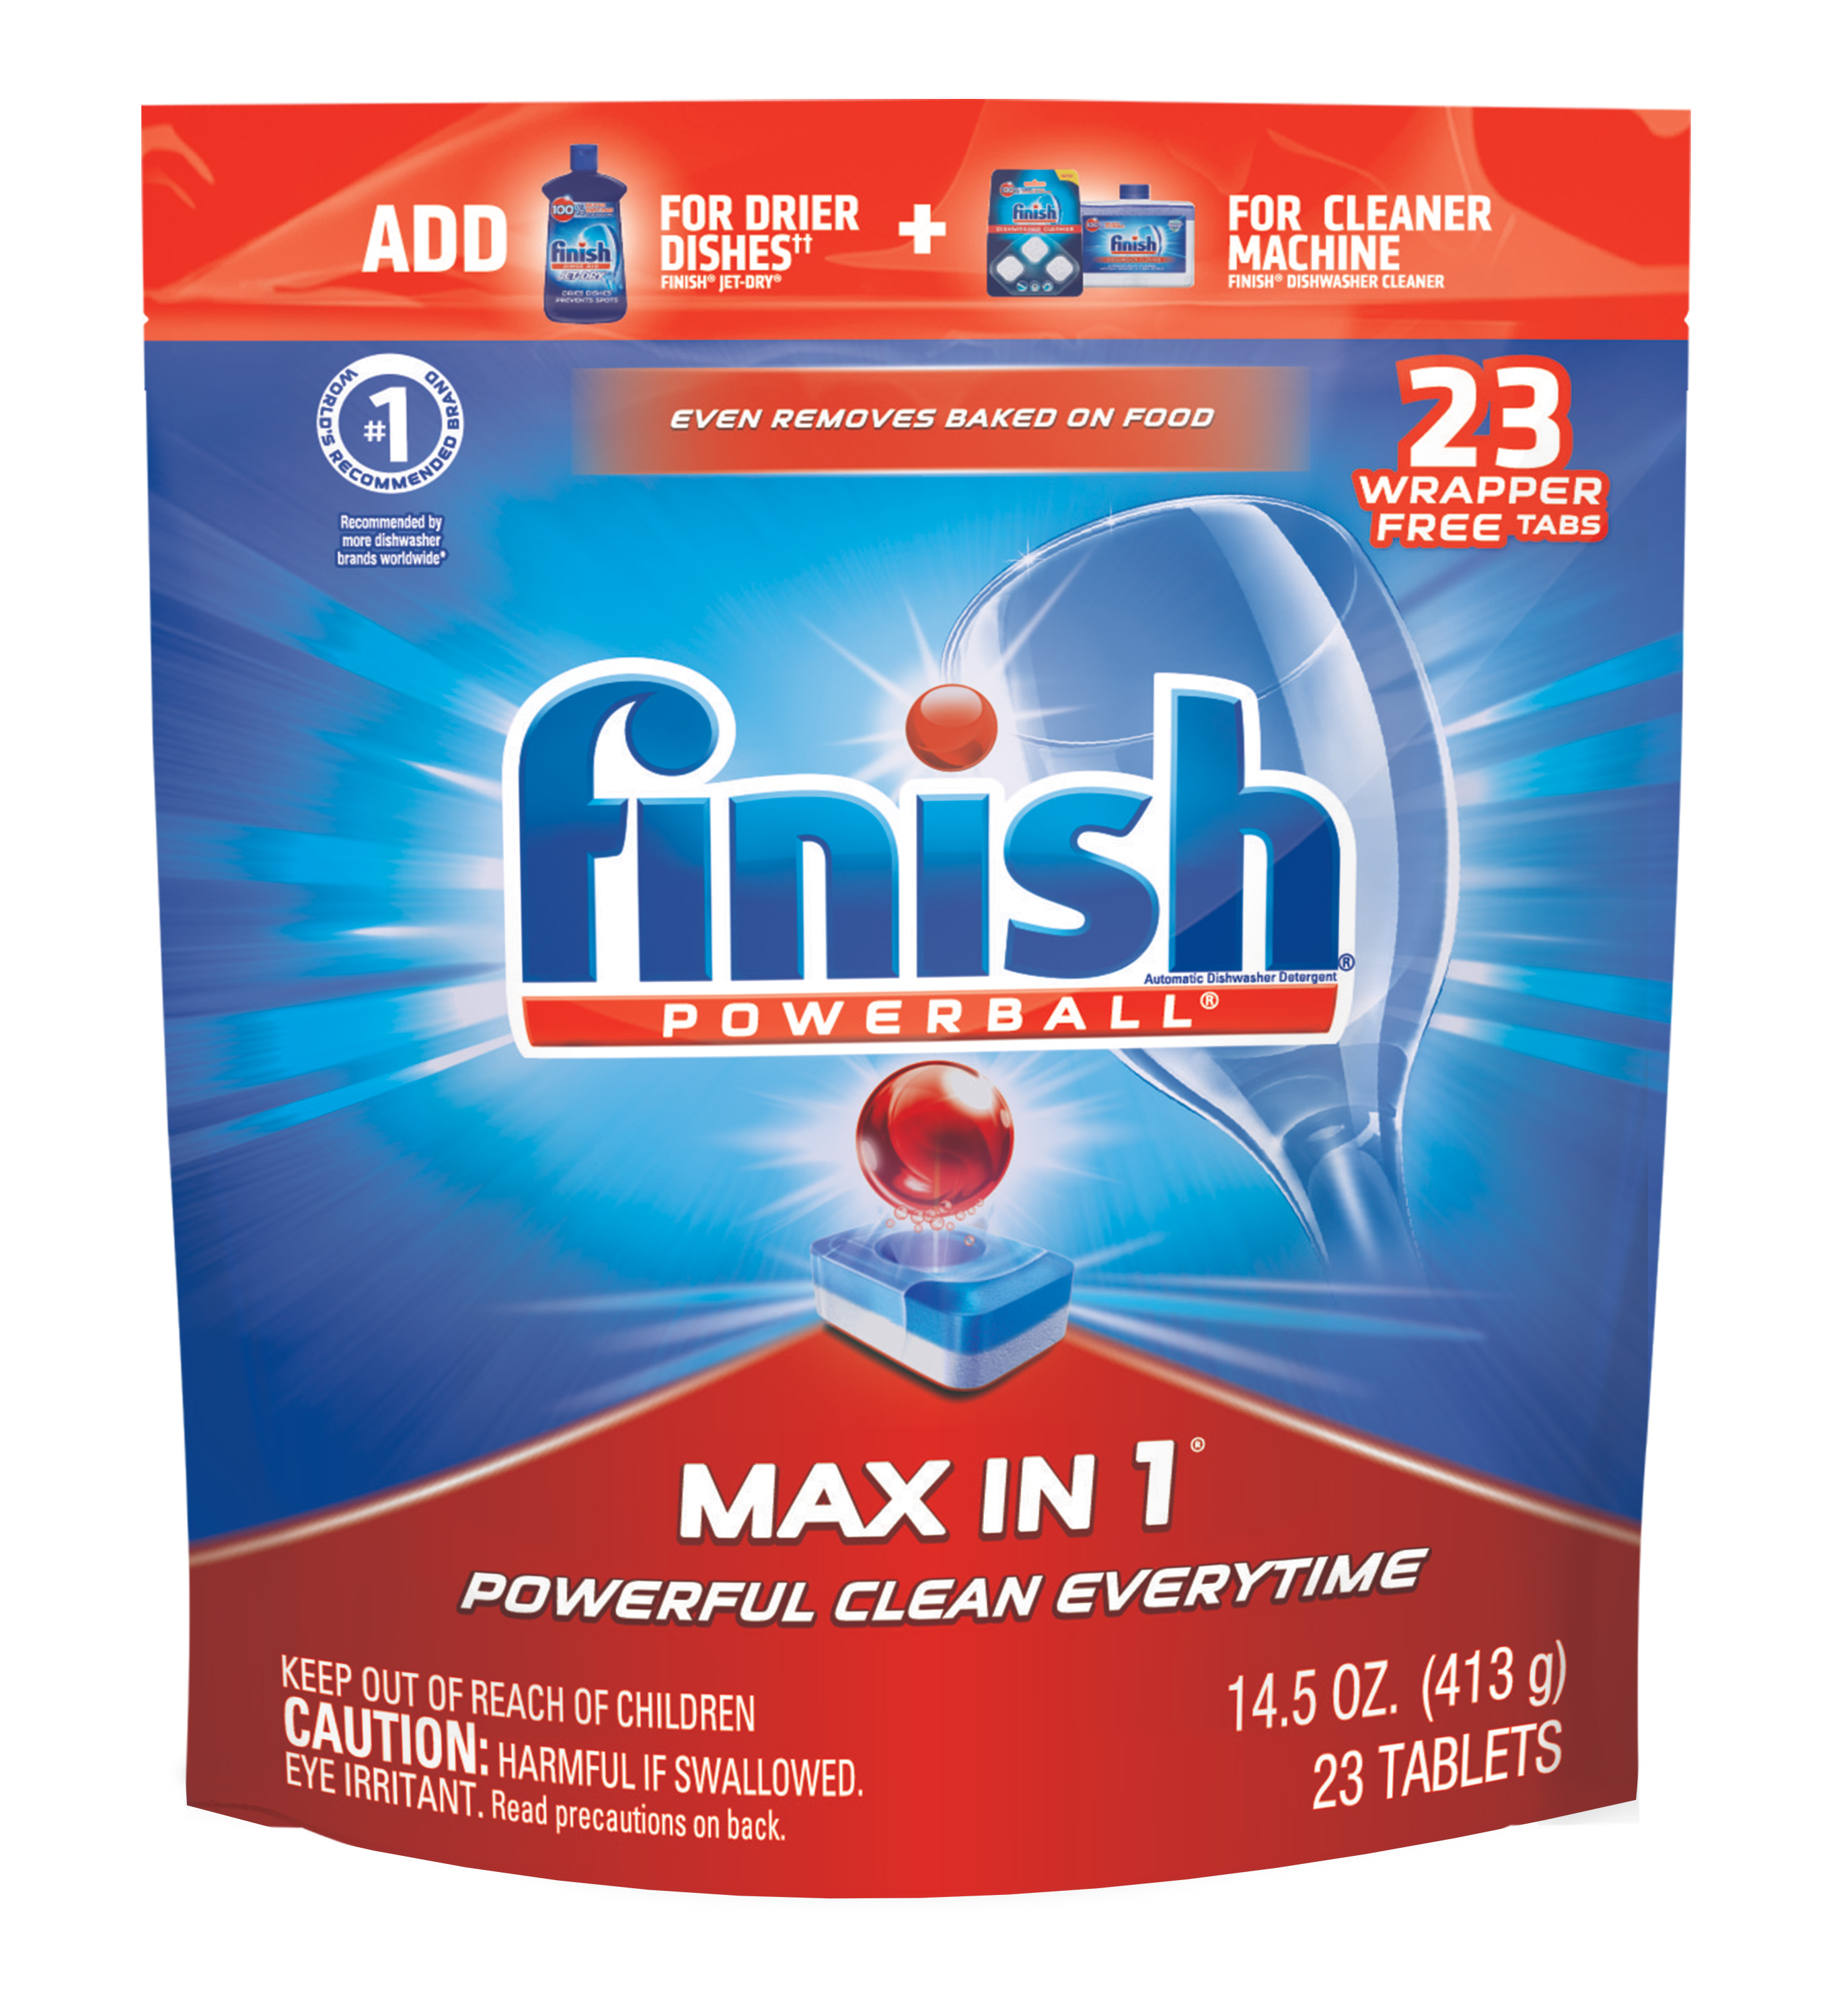 Finish Max in 1 Powerball, 23ct, Wrapper Free Dishwasher Detergent Tablets